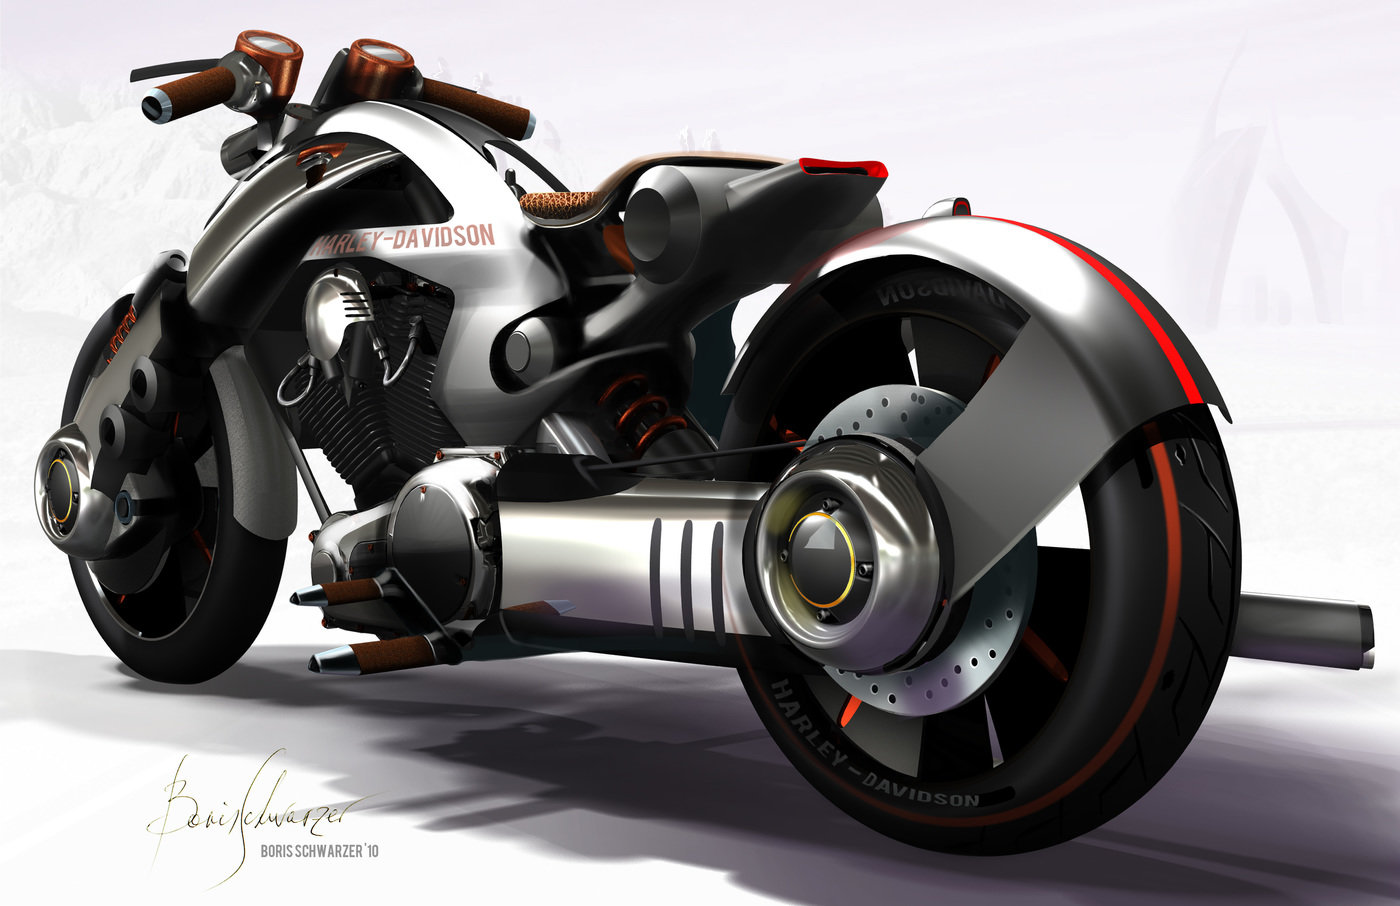 Harley Davidson Pilgrim 2020 By Boris Schwarzer At